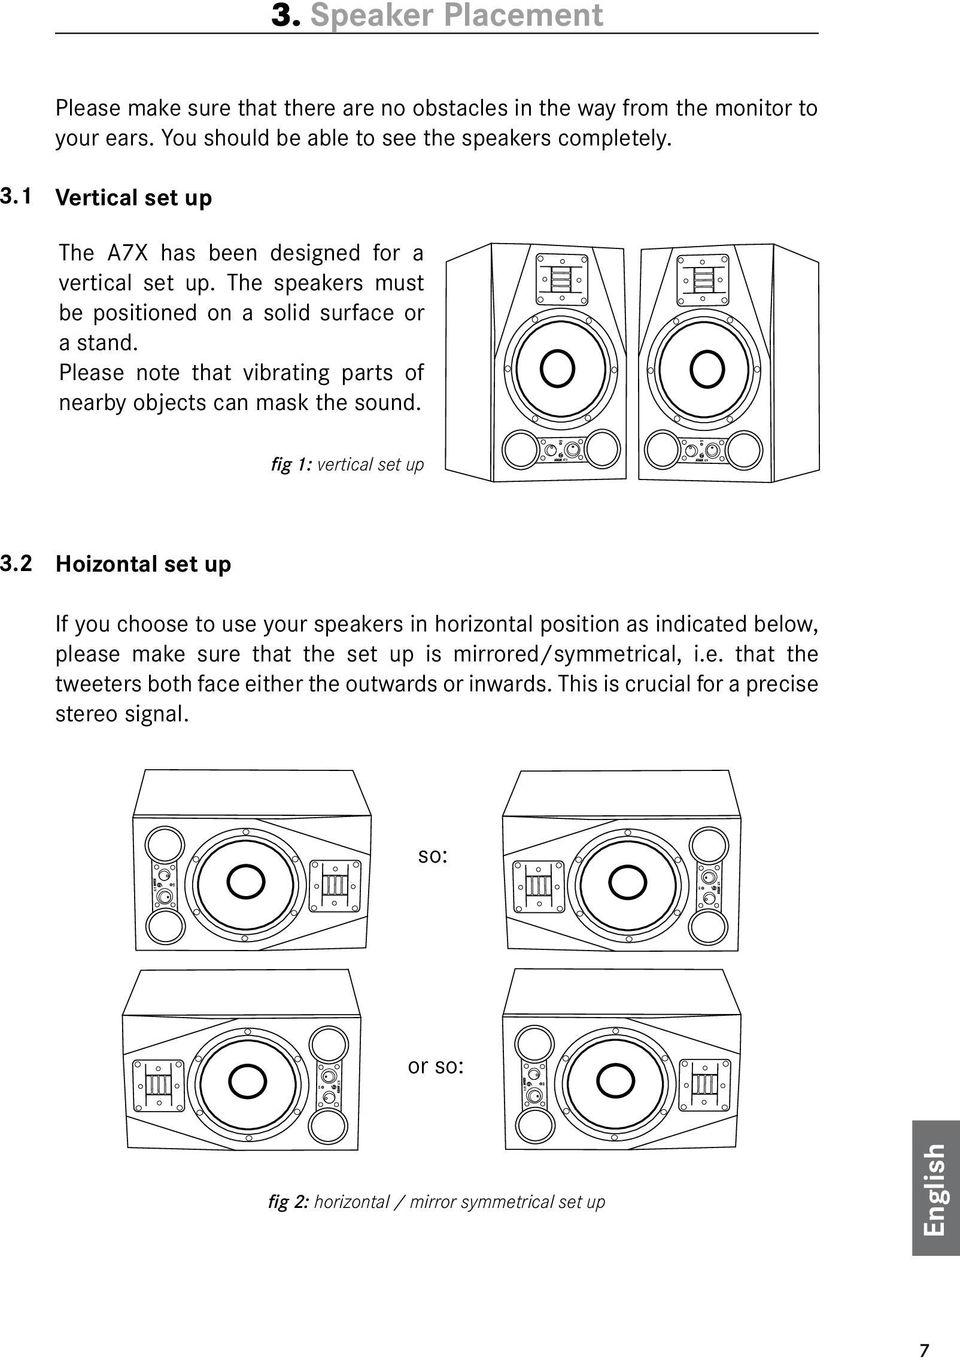 2 Hoizontal set up If you choose to use your speakers in horizontal position as indicated below, please make sure that the set up is mirrored/symmetrical, i.e. that the tweeters both face either the outwards or inwards.